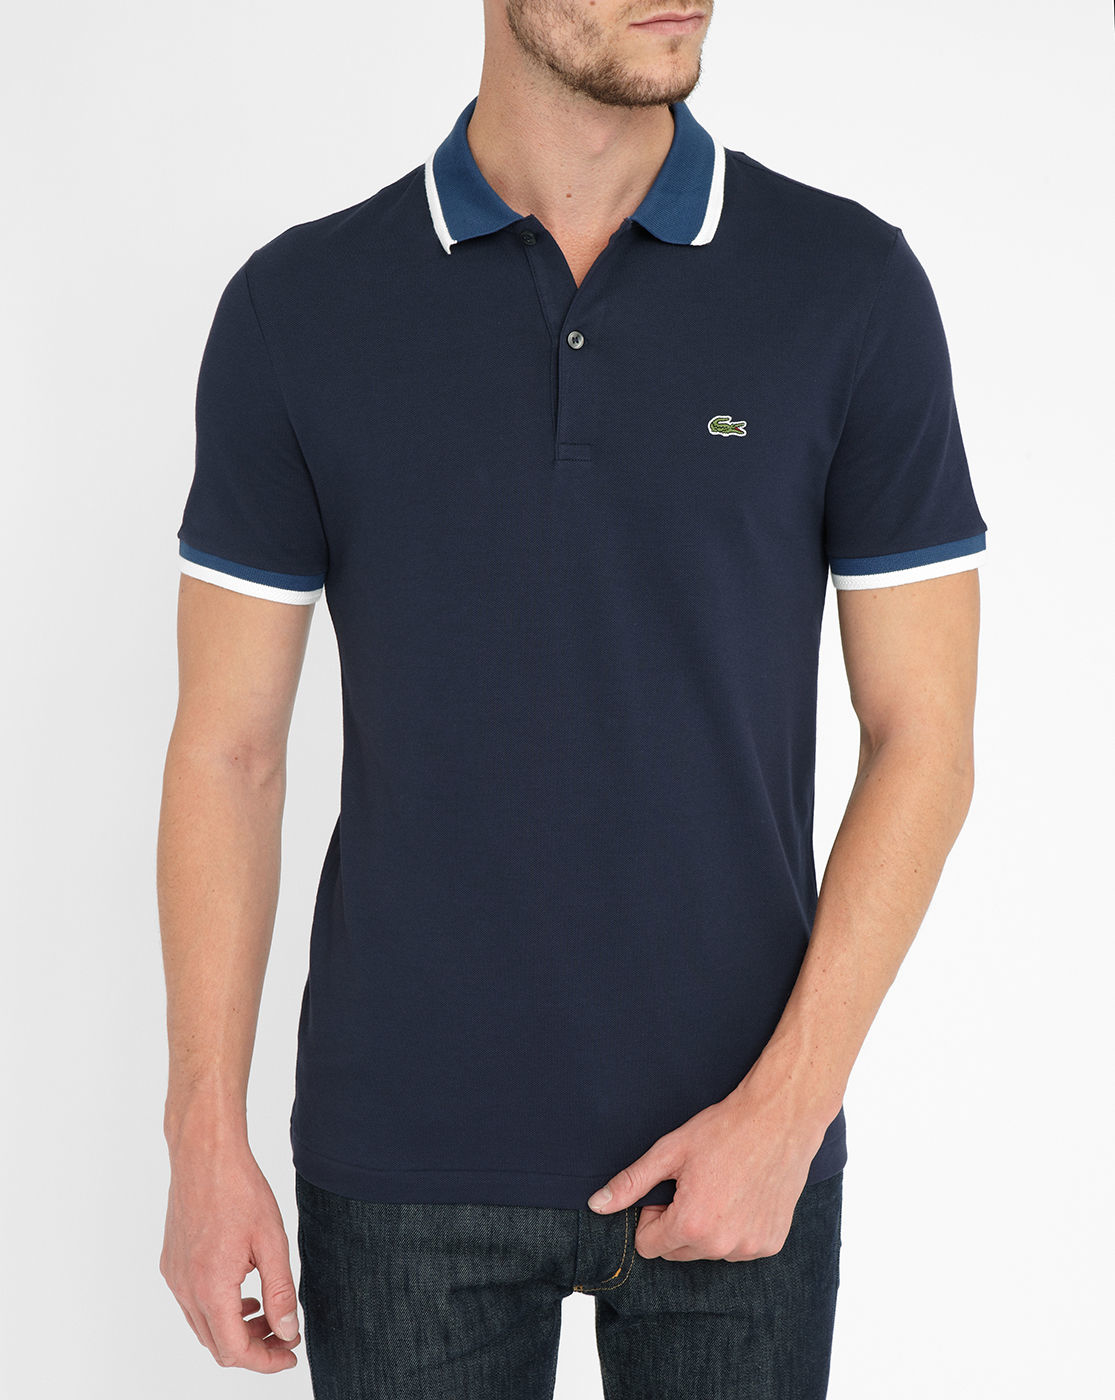 lacoste navy contrasting blue white collar short sleeve. Black Bedroom Furniture Sets. Home Design Ideas